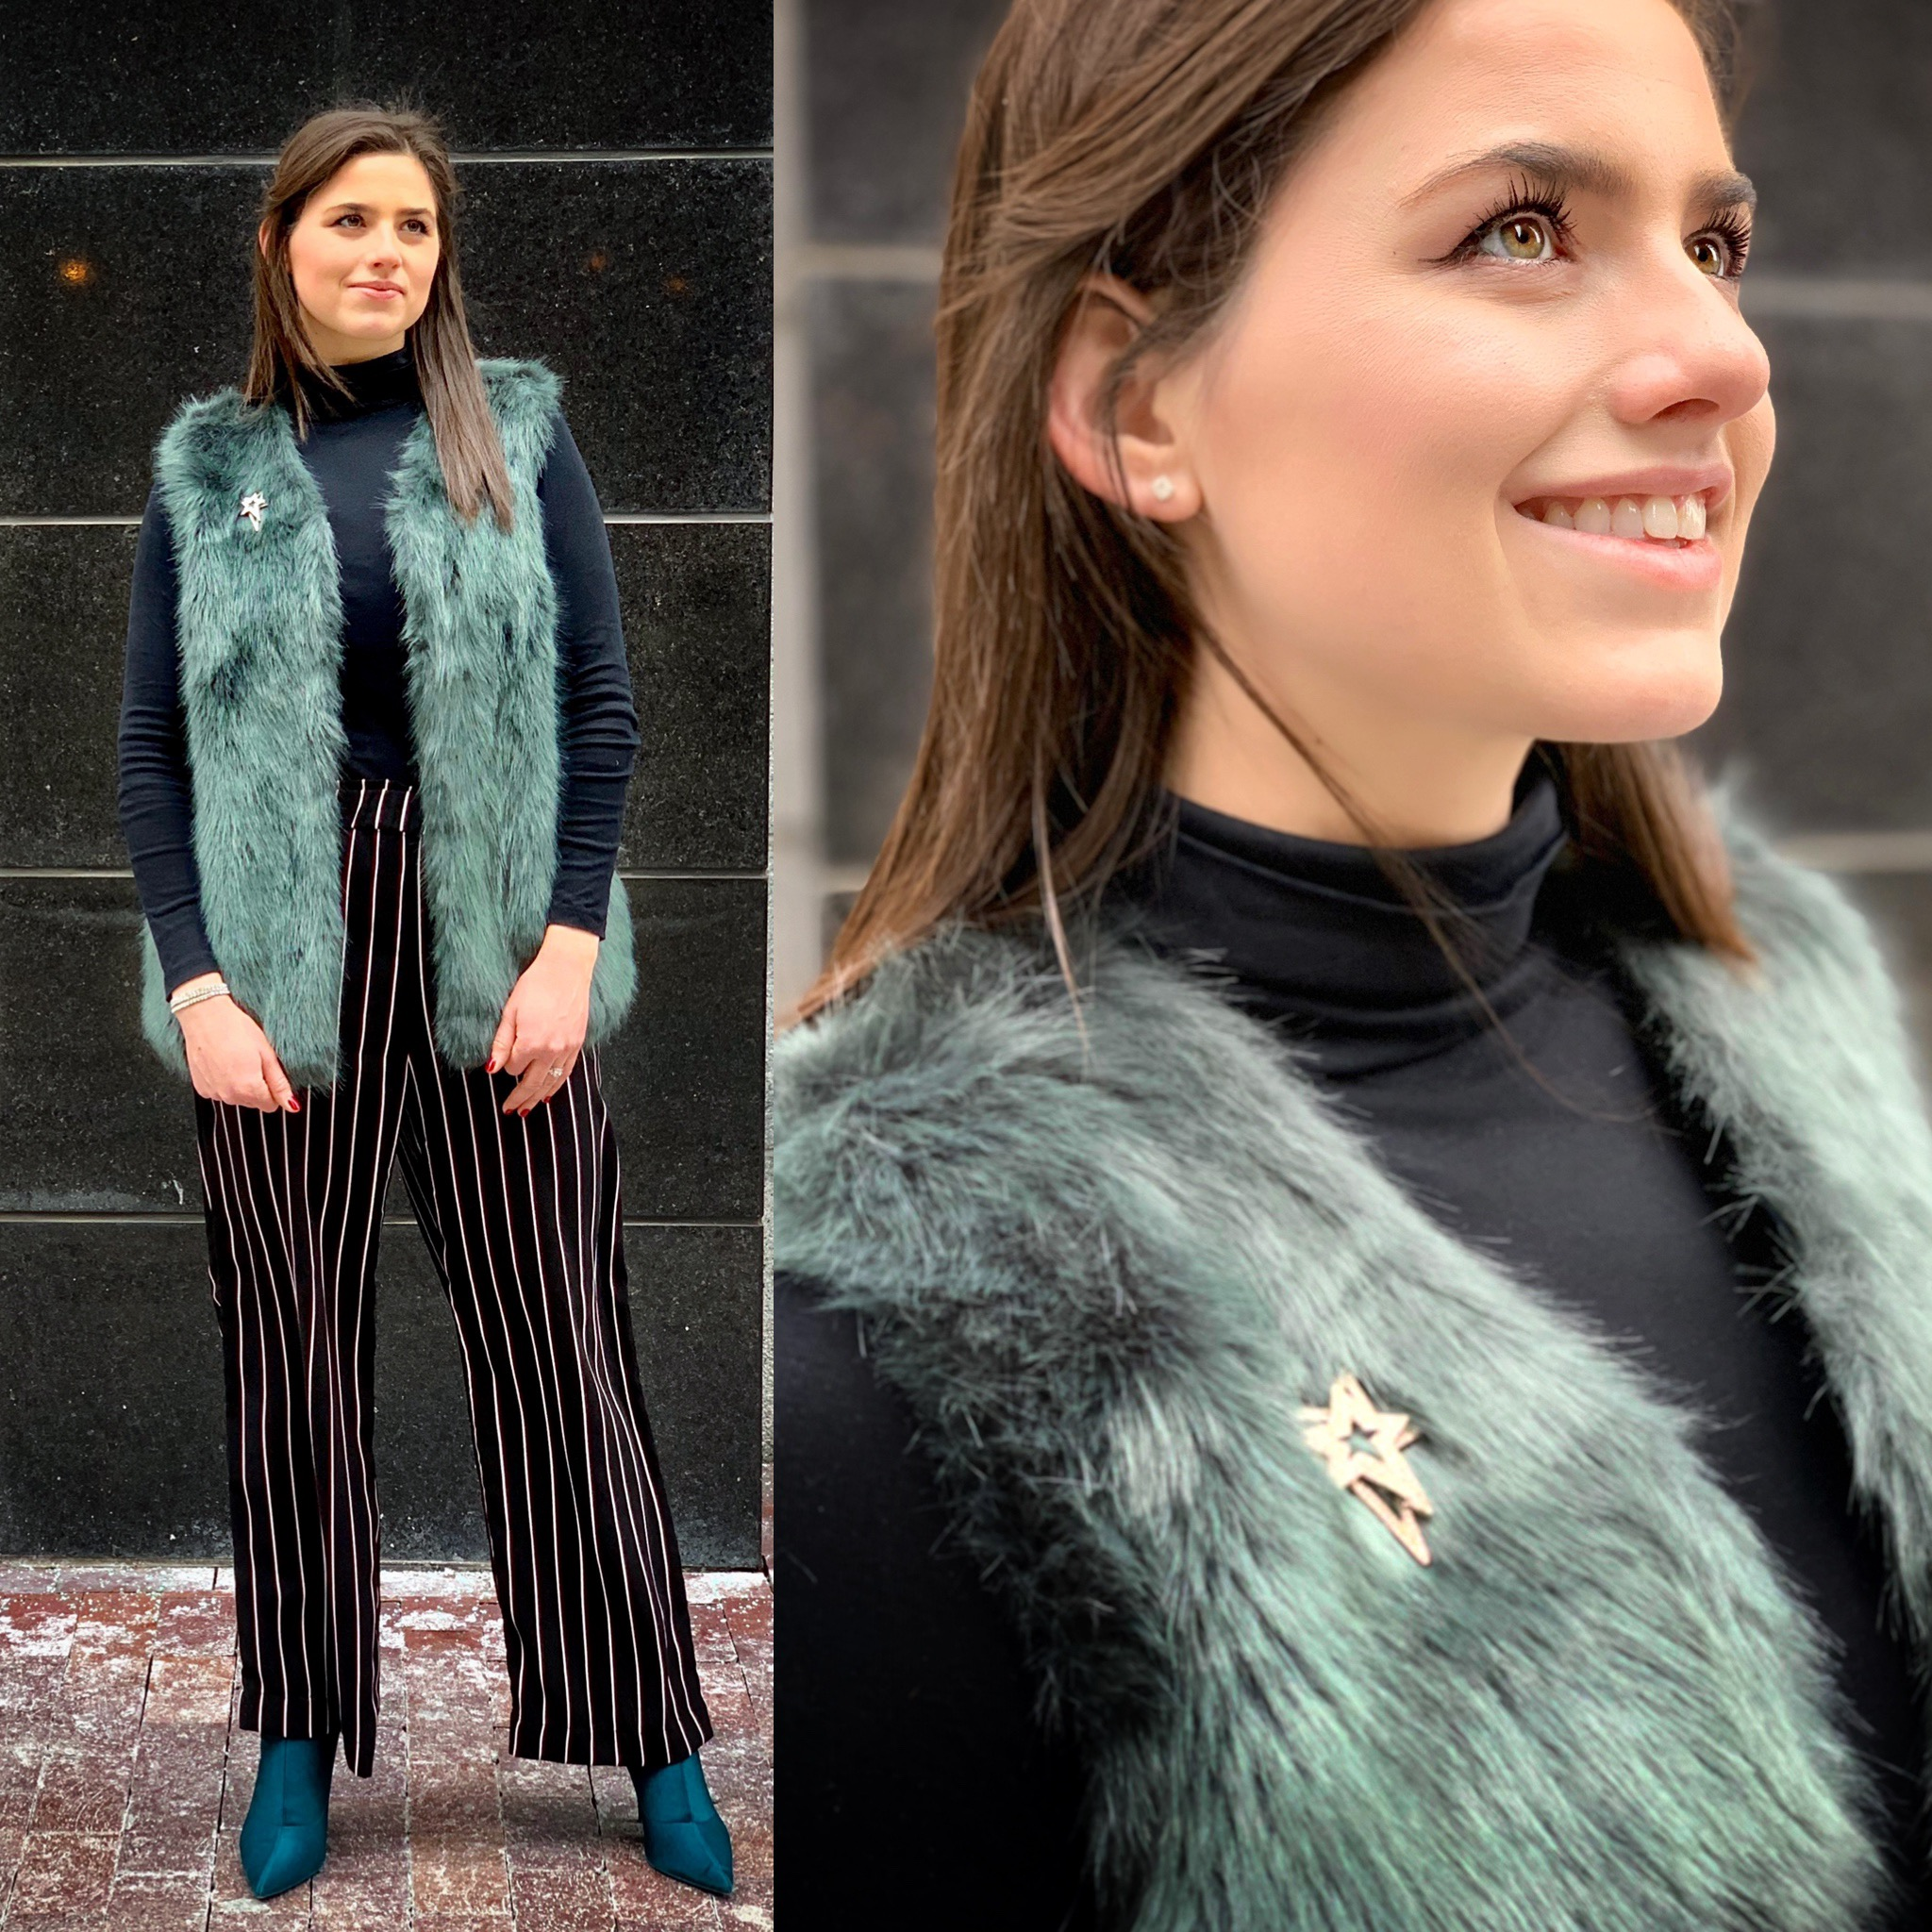 Vest: TJ Maxx &    on Poshmark   , similar    here    and    here     Turtleneck: Old Navy (out of stock), similar    here    and    here     Pants: H&M (out of stock), similar    here   ,    here   , and    here     Booties:    Calvin Klein     Brooch: Lord & Taylor (out of stock), similar    here   ,    here   , and    here